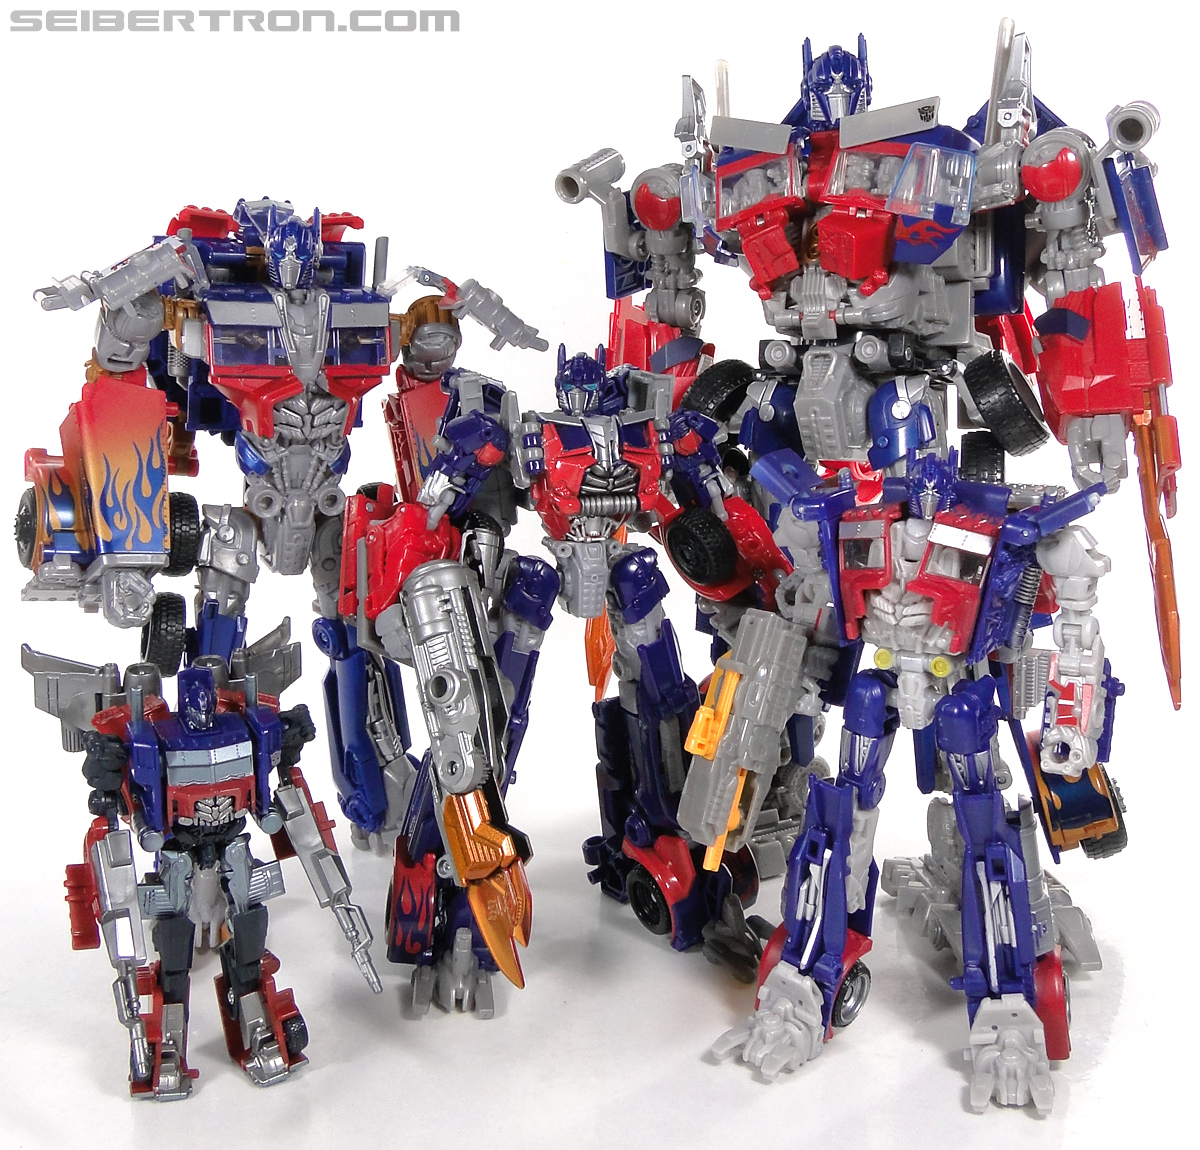 Transformers Dark of the Moon Optimus Prime (Image #138 of 145)